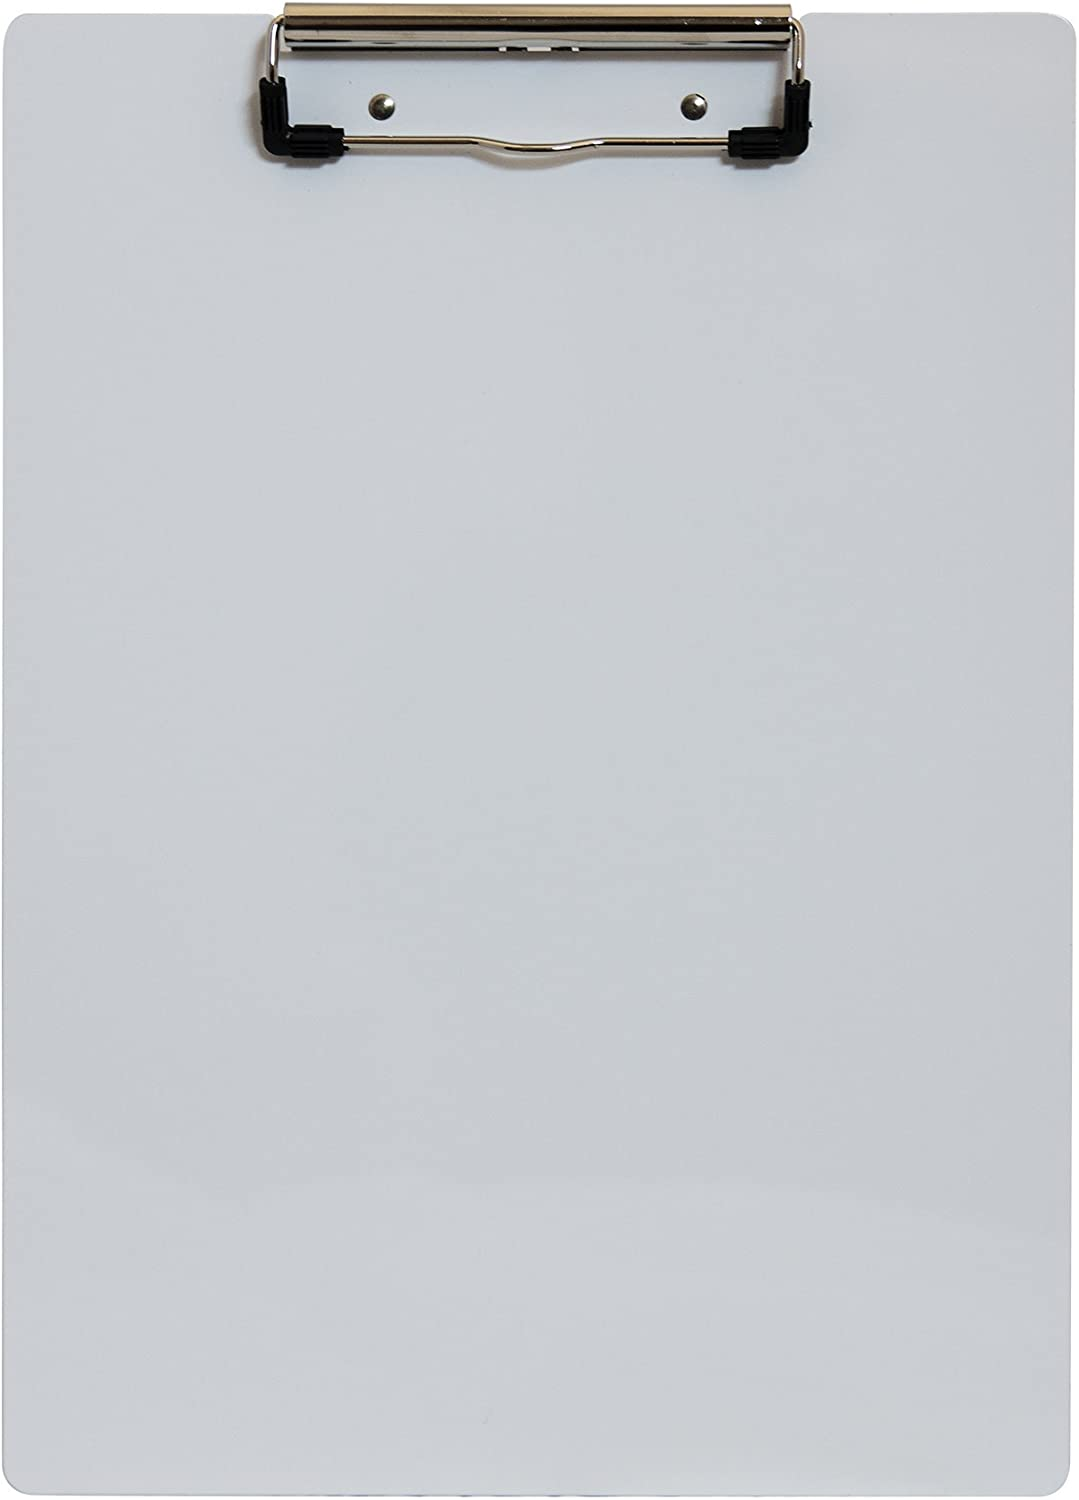 Saunders 21526 Recycled Aluminum Clipboard - White, Letter Size, 8.5 in. x 12 in. Document Holder with Low Profile Clip